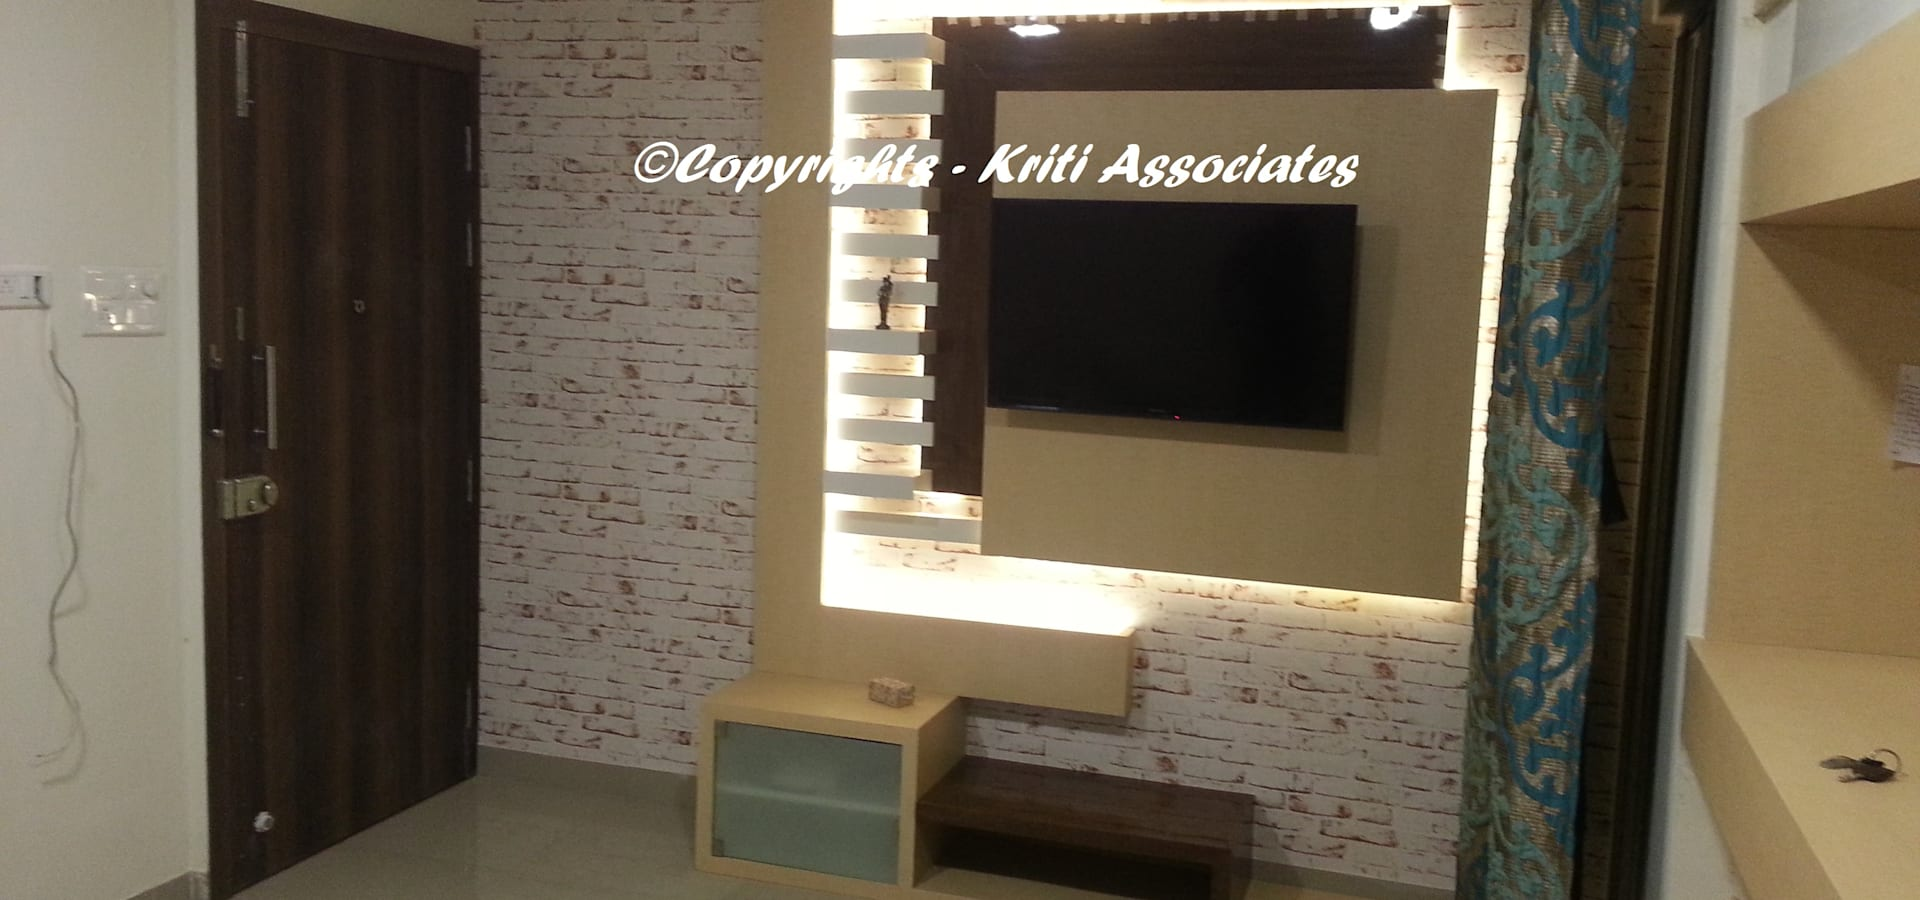 Kriti Associates / girishsdesigns